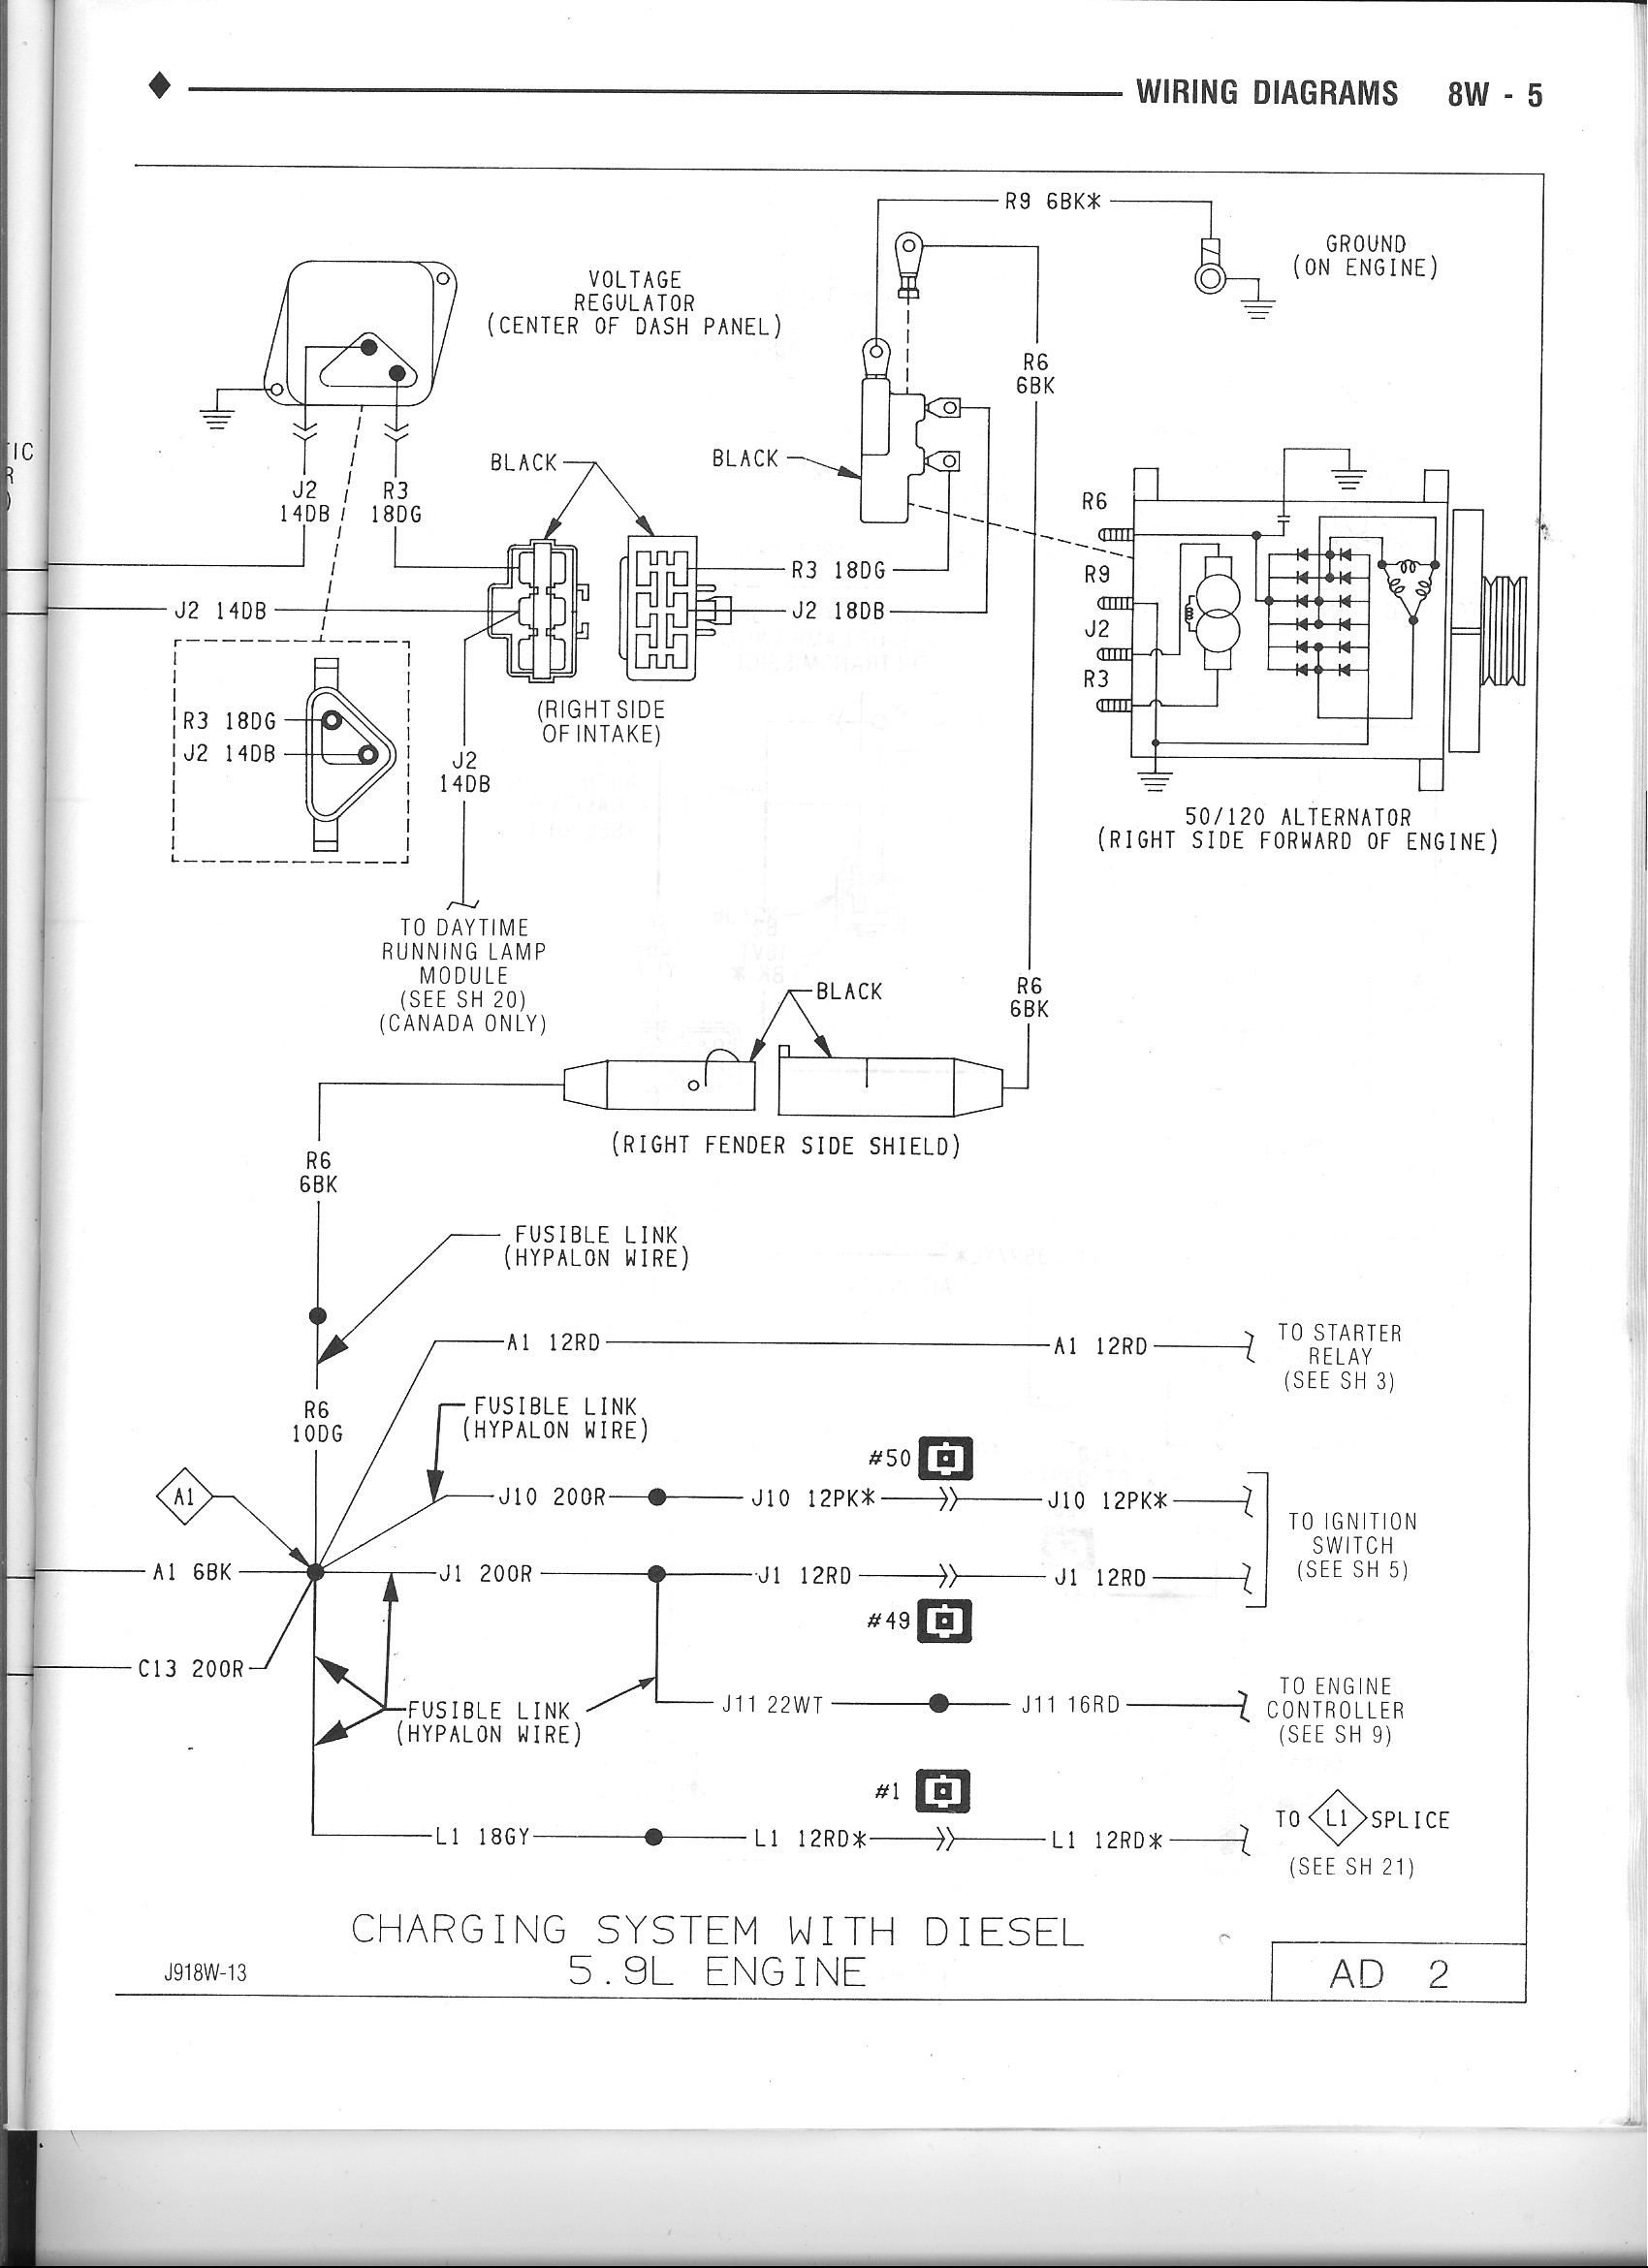 1990 Dodge Alternator Wiring Diagrams F700 Diagram 3 Wire 94 Dakota Library